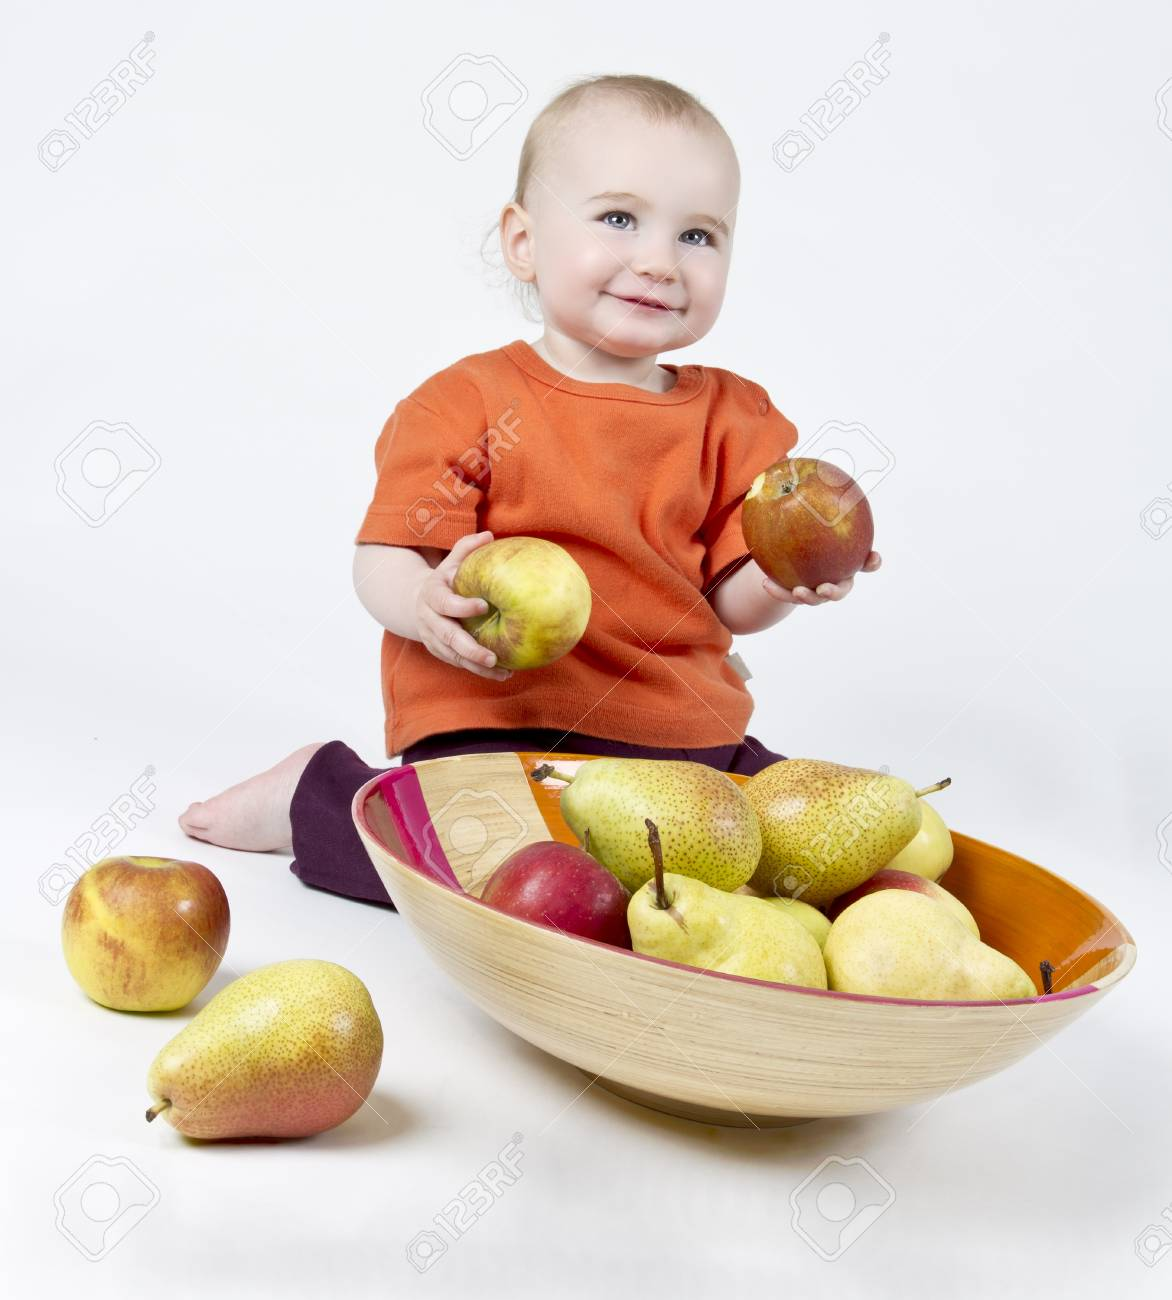 baby with apples and pears laying in bowl - studio shot Stock Photo - 13976449